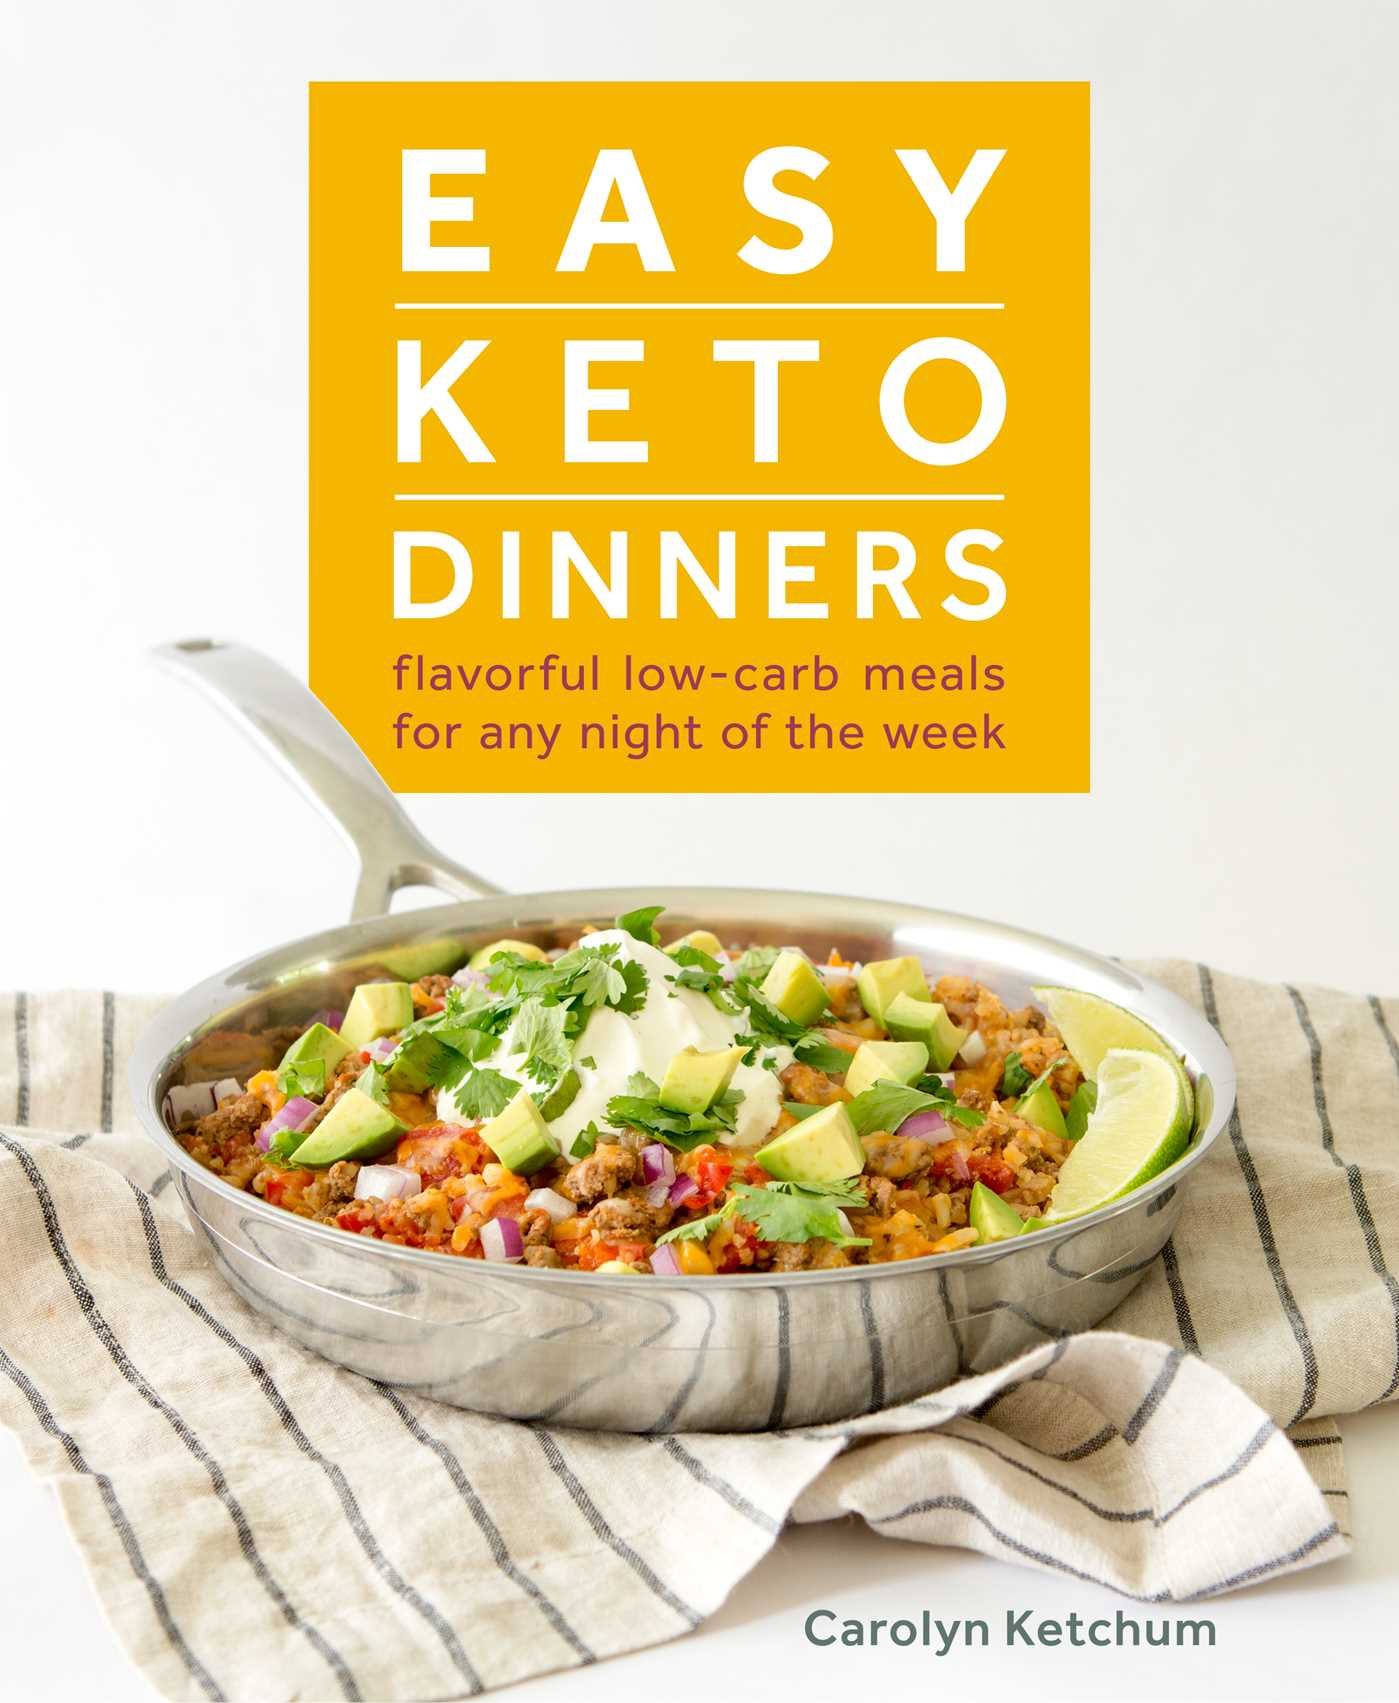 Low Carb Tv Dinners Walmart : dinners, walmart, Dinners:, Flavorful, Low-Carb, Meals, Night, (Paperback), Walmart.com